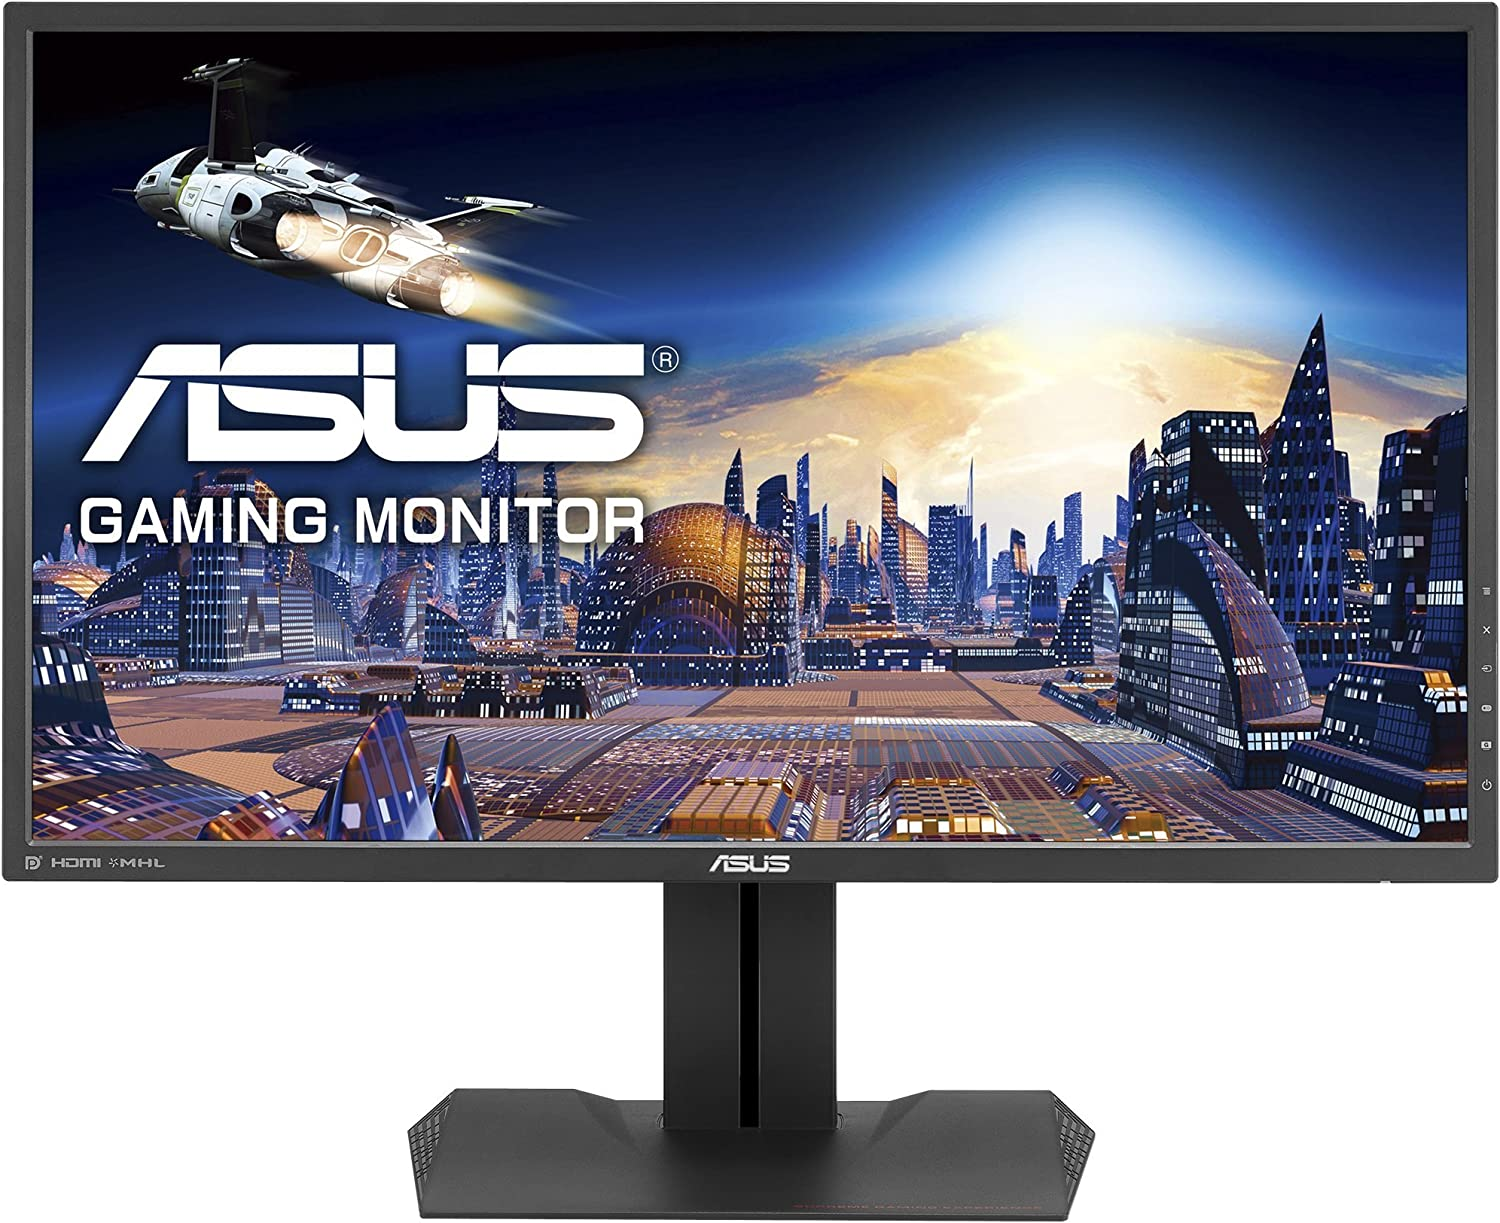 ASUS 27-inch 2k 144Hz WQHD FreeSync Gaming Monitor